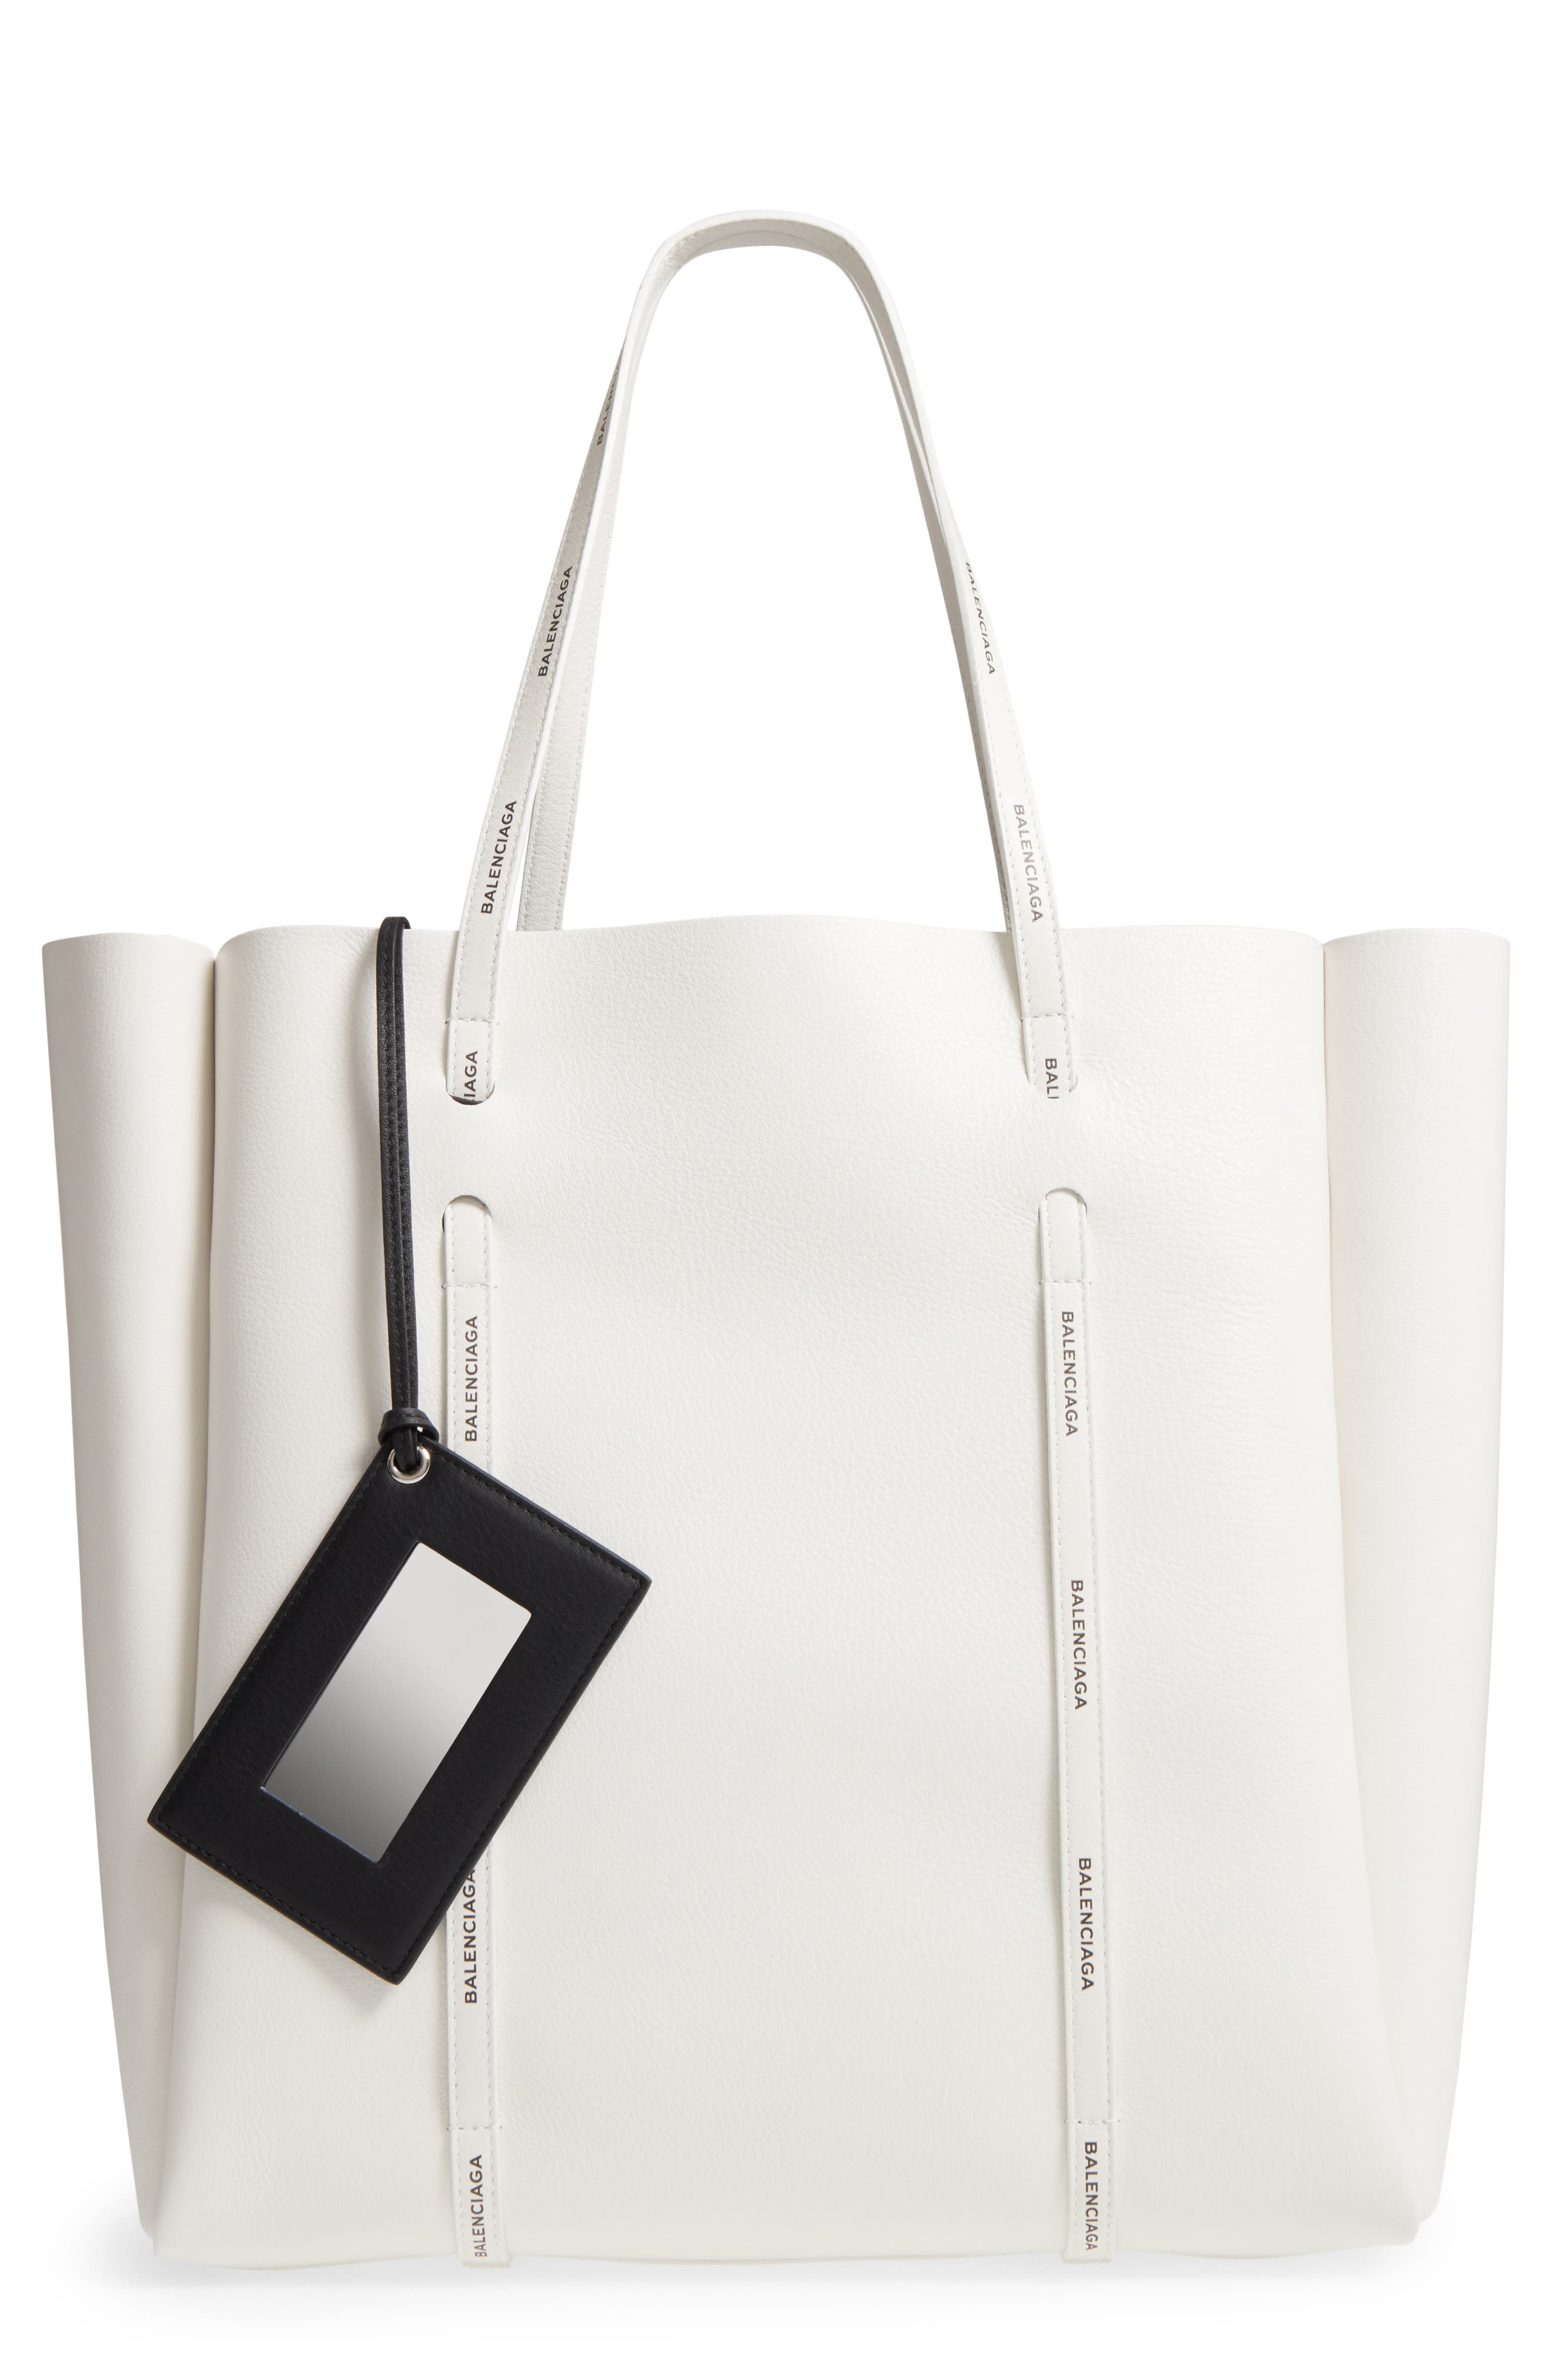 Medium Everyday Calfskin Tote,                         Main,                         color, BLANC/ BLACK